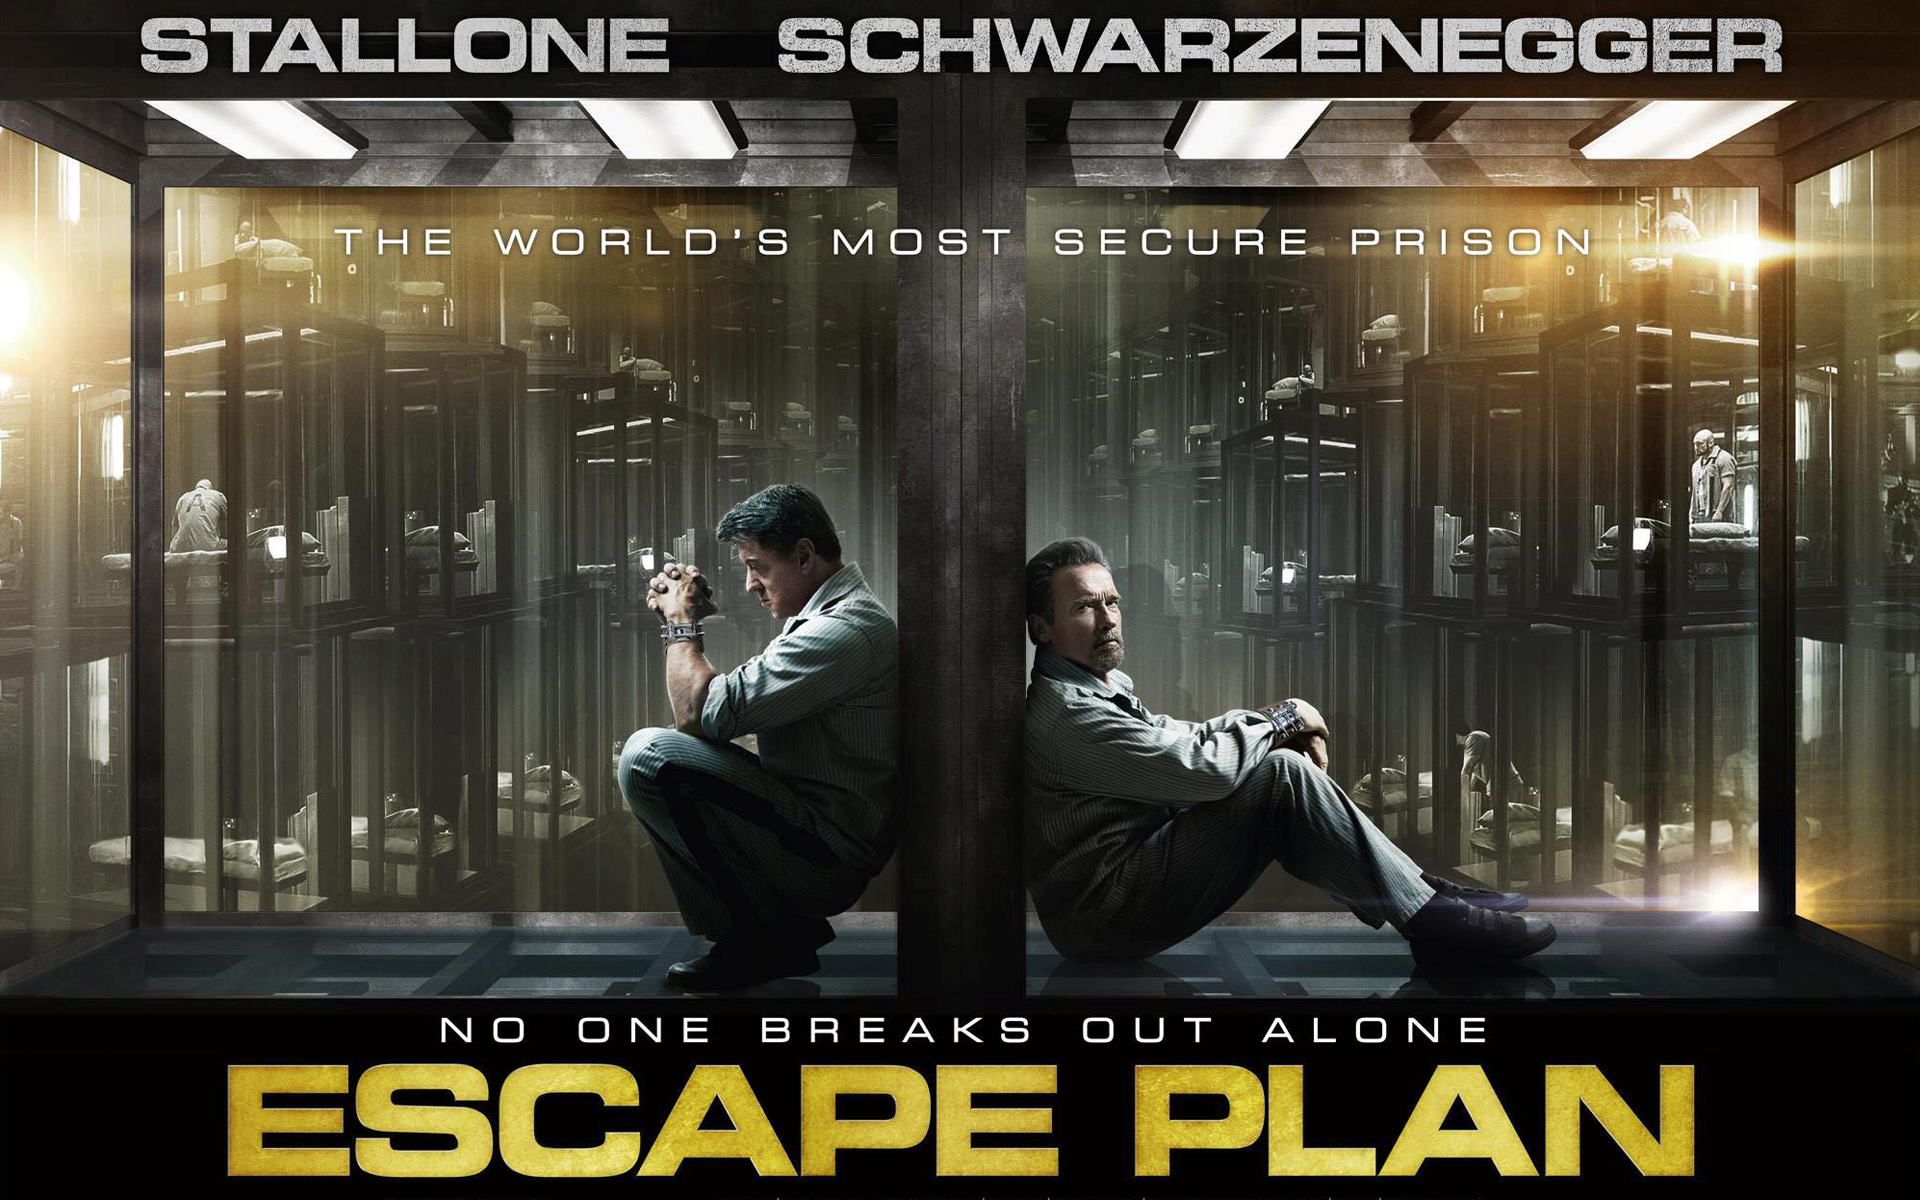 Escape Plan 2013 Movie 1118.21 Kb